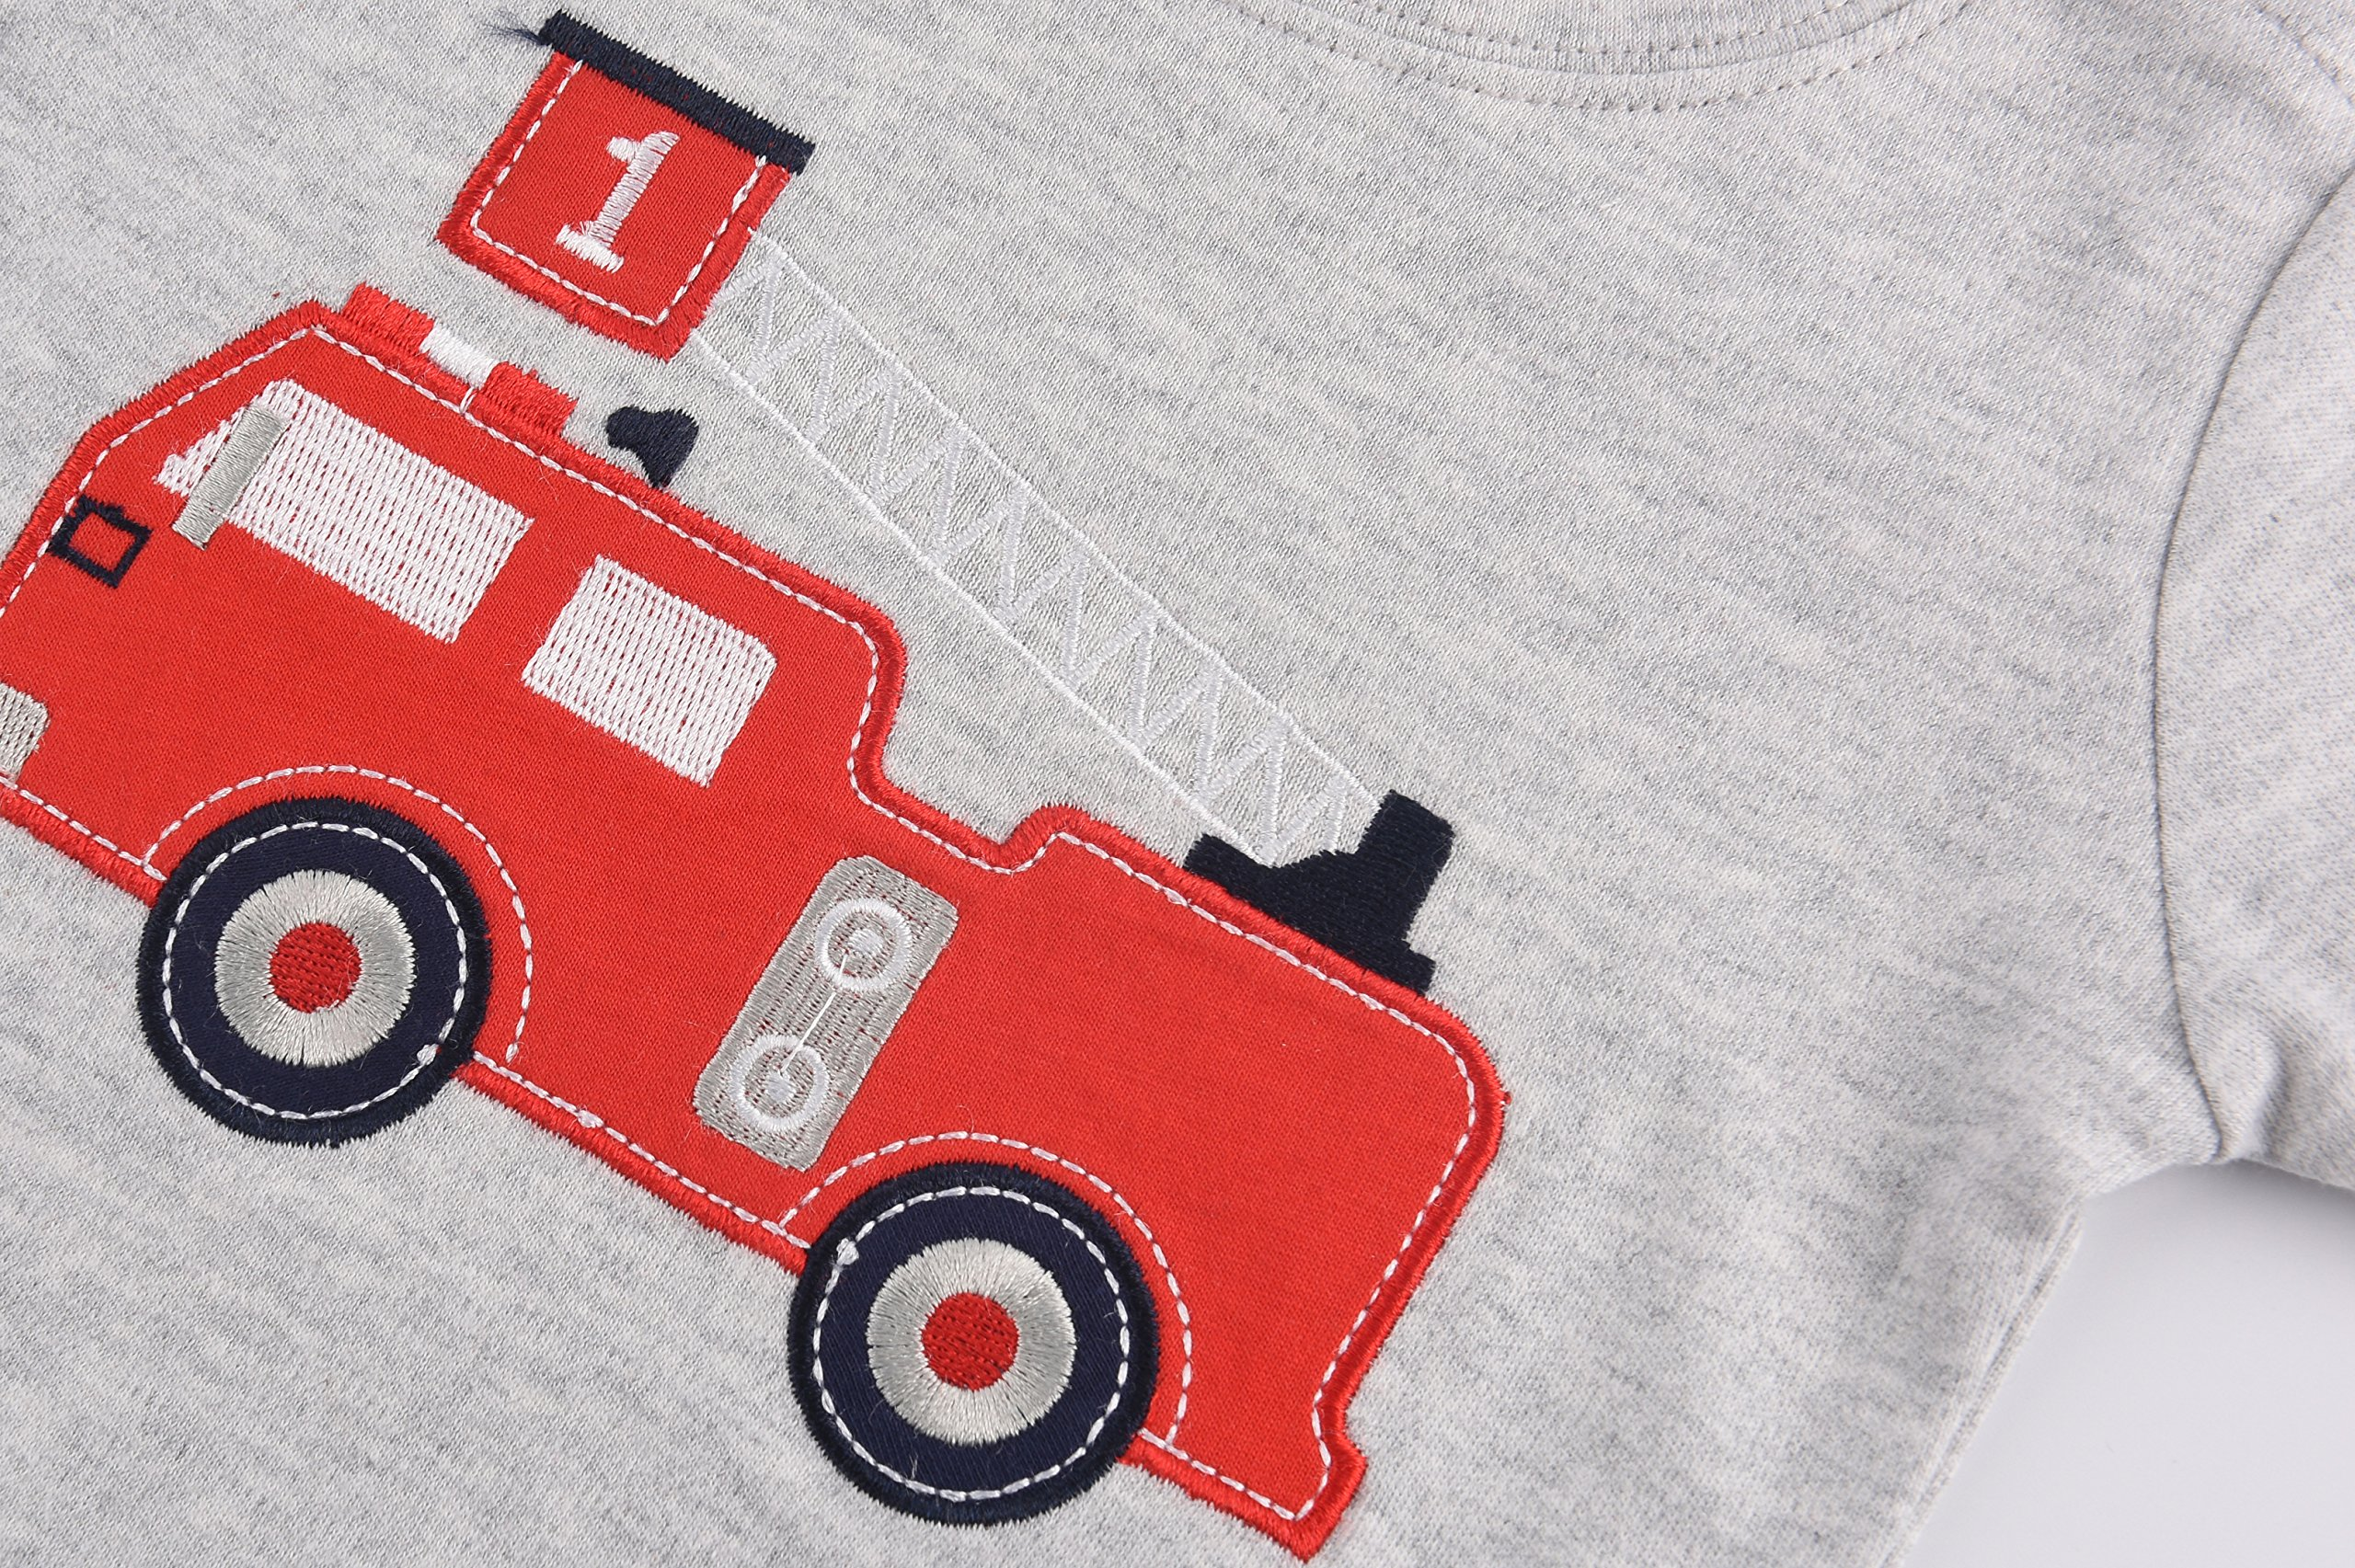 Dhasiue Newborn Baby Short Sleeve Romper Infant Summer Clothing Firetruck Creeper